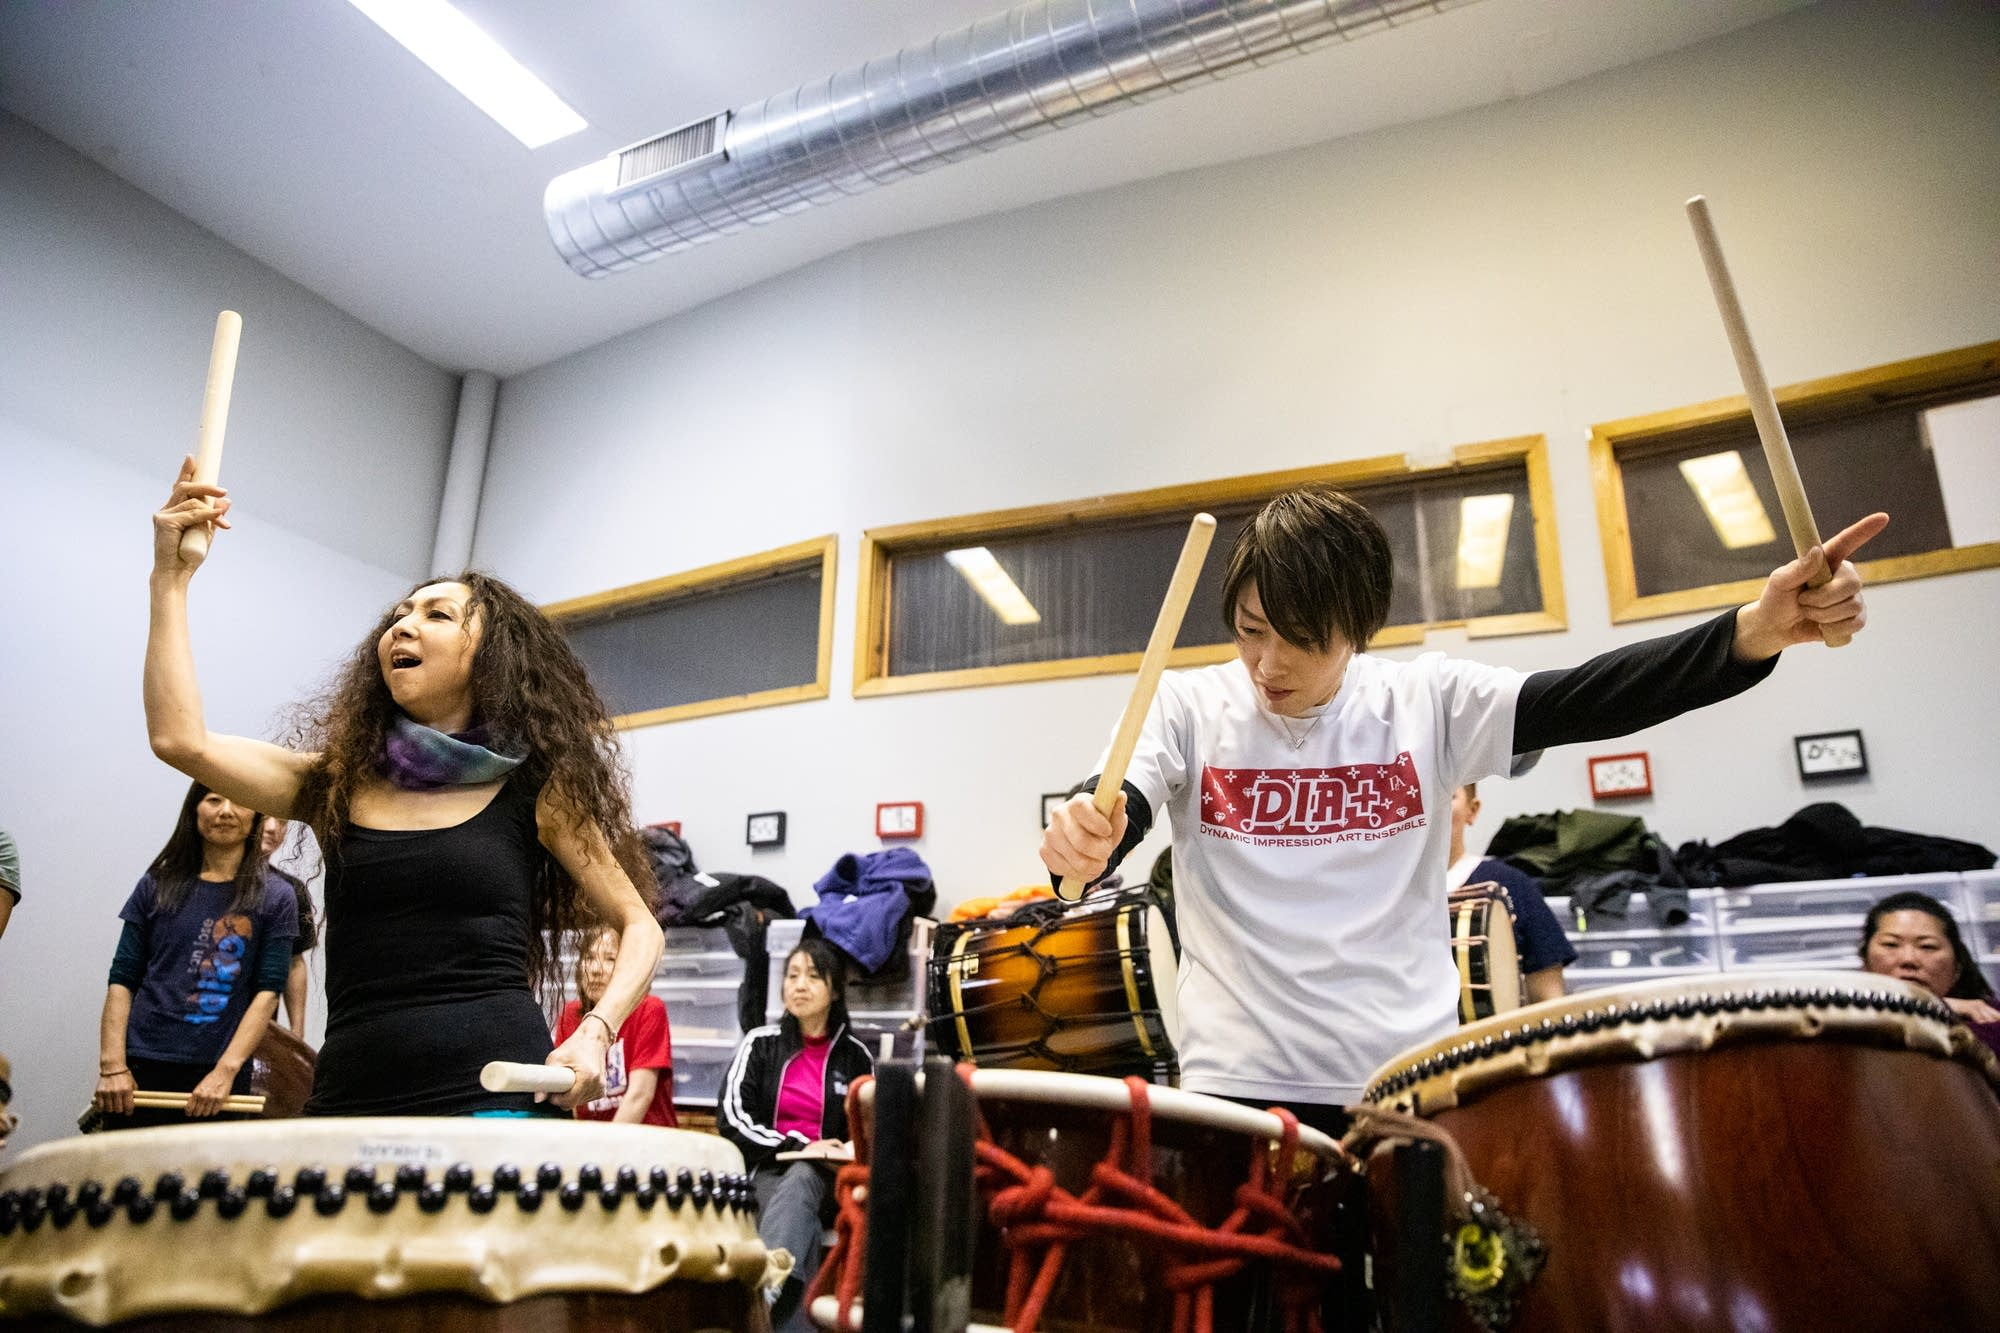 Two women passionately play large drums.